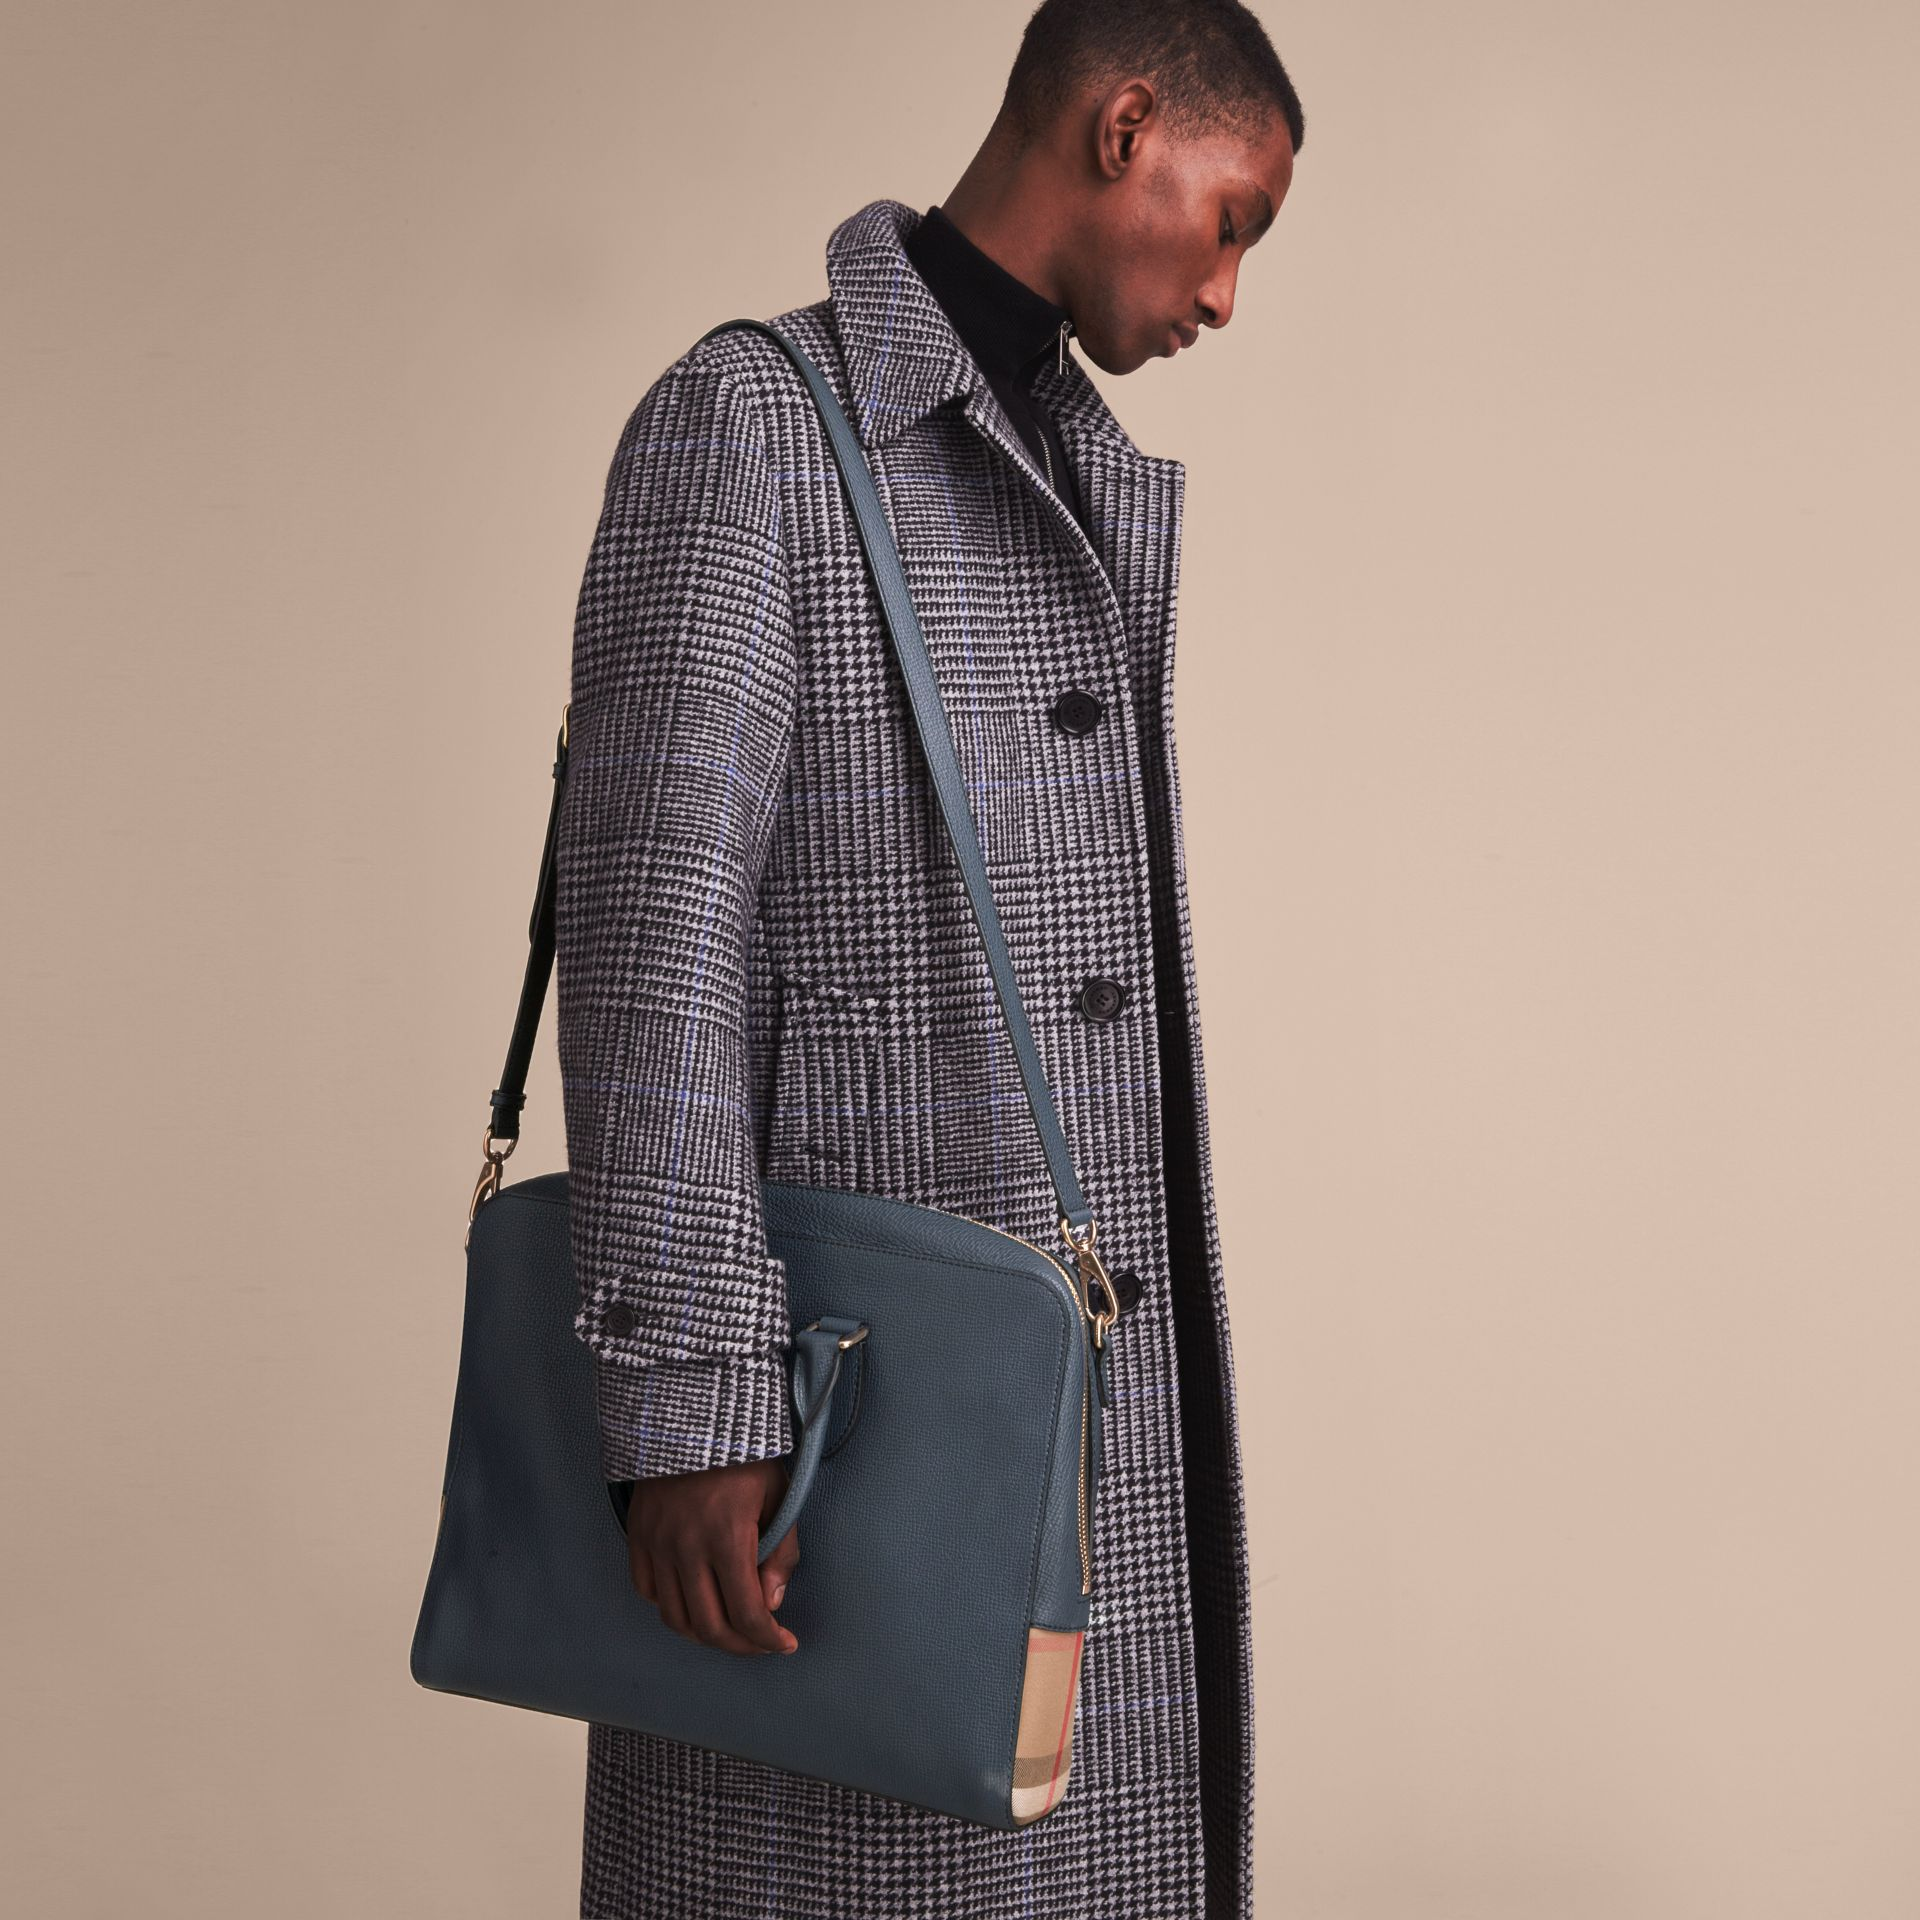 Leather and House Check Briefcase in Storm Blue - Men | Burberry Australia - gallery image 4